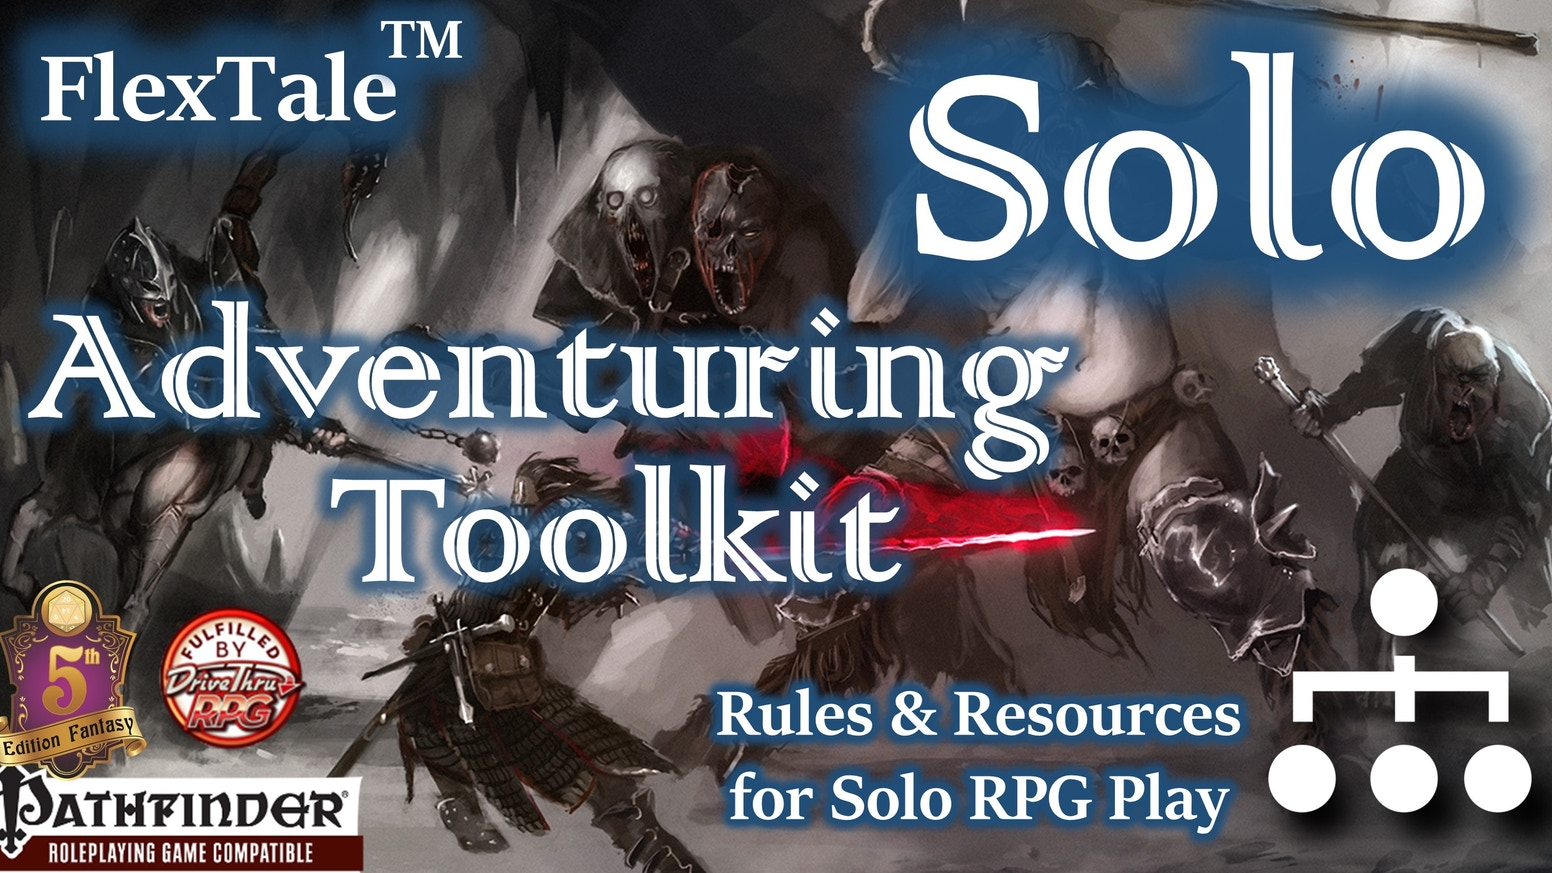 FlexTale Solo Adventuring Toolkit (Pathfinder/5E, Unisystem) by J